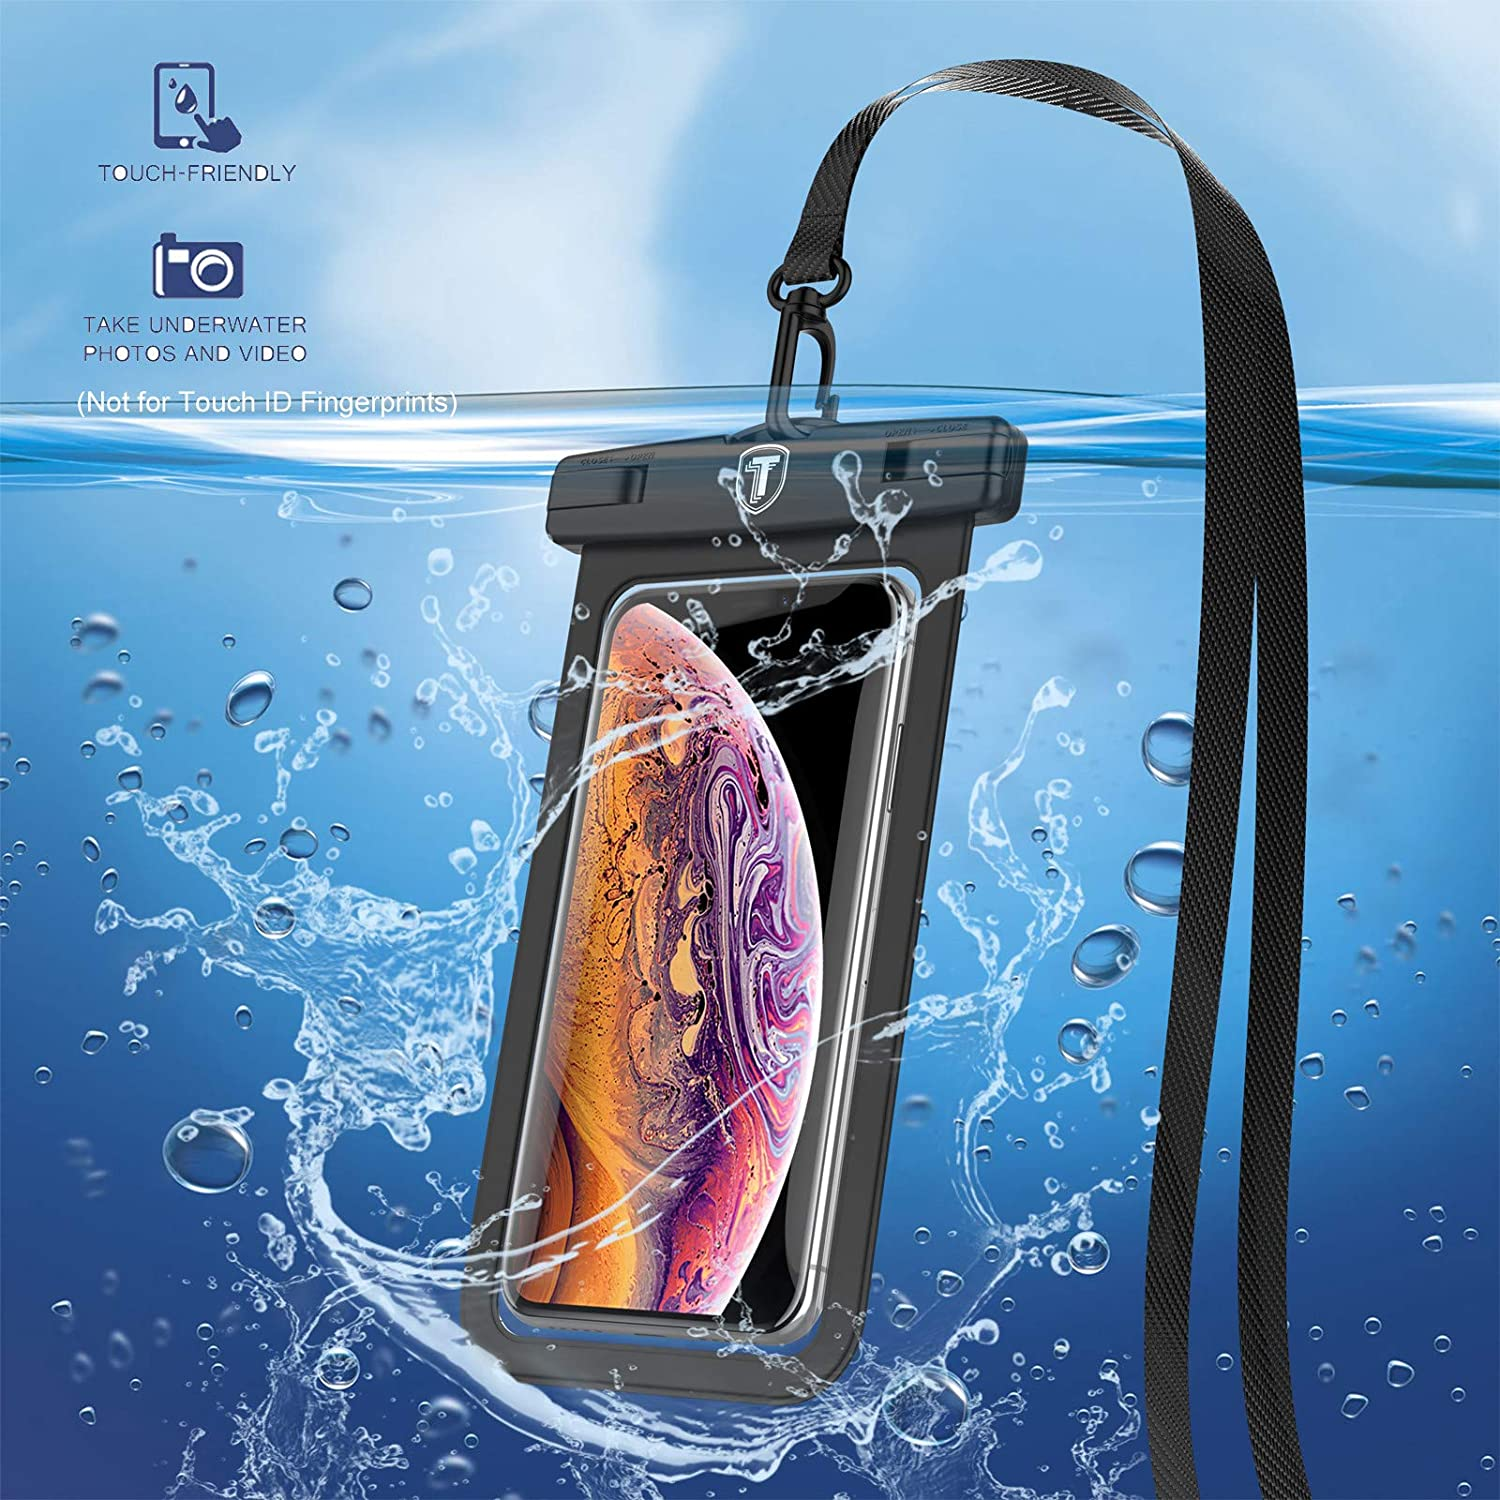 Tiflook Waterproof Pouch Phone Dry Bag Underwater Case Compatible with iPhone 12 Pro Max 11 XR X XS Max 8 7 6S 6 SE Samsung LG Moto TCL Phone Pouch for Beach with Lanyard Neck Strap, Black (2 Pack)